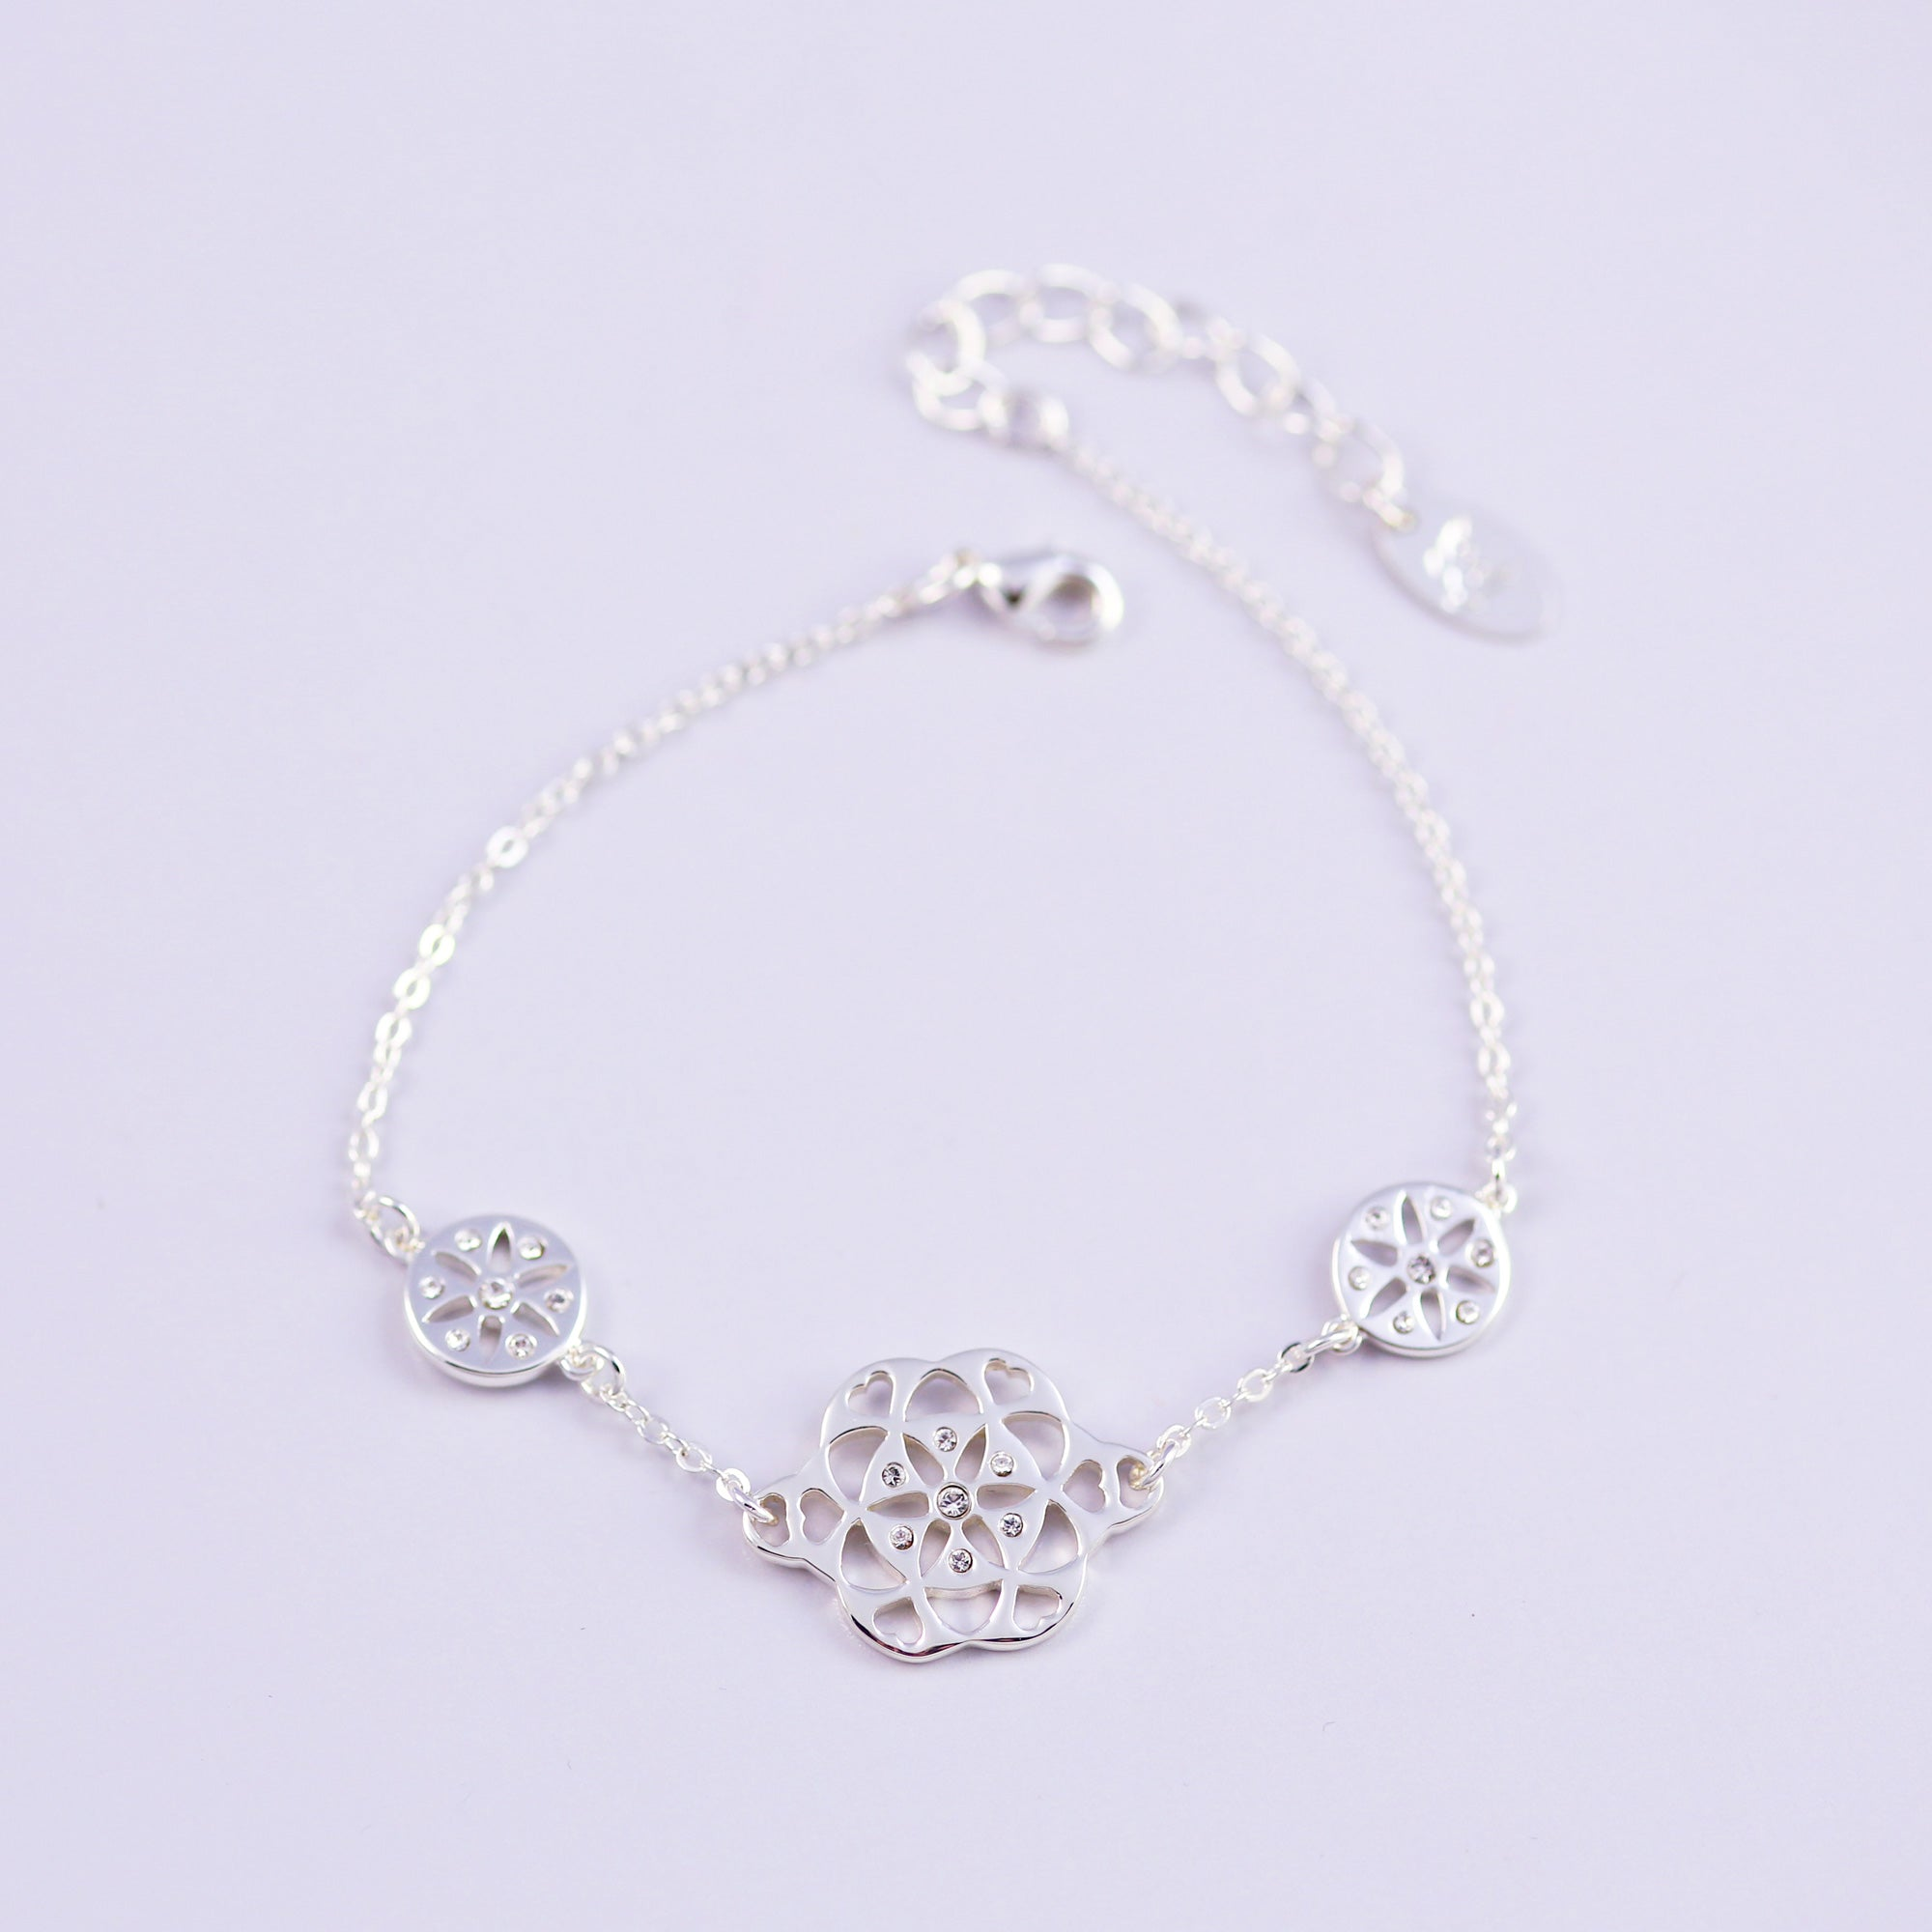 Silver & Crystal Seed of Life Bracelet